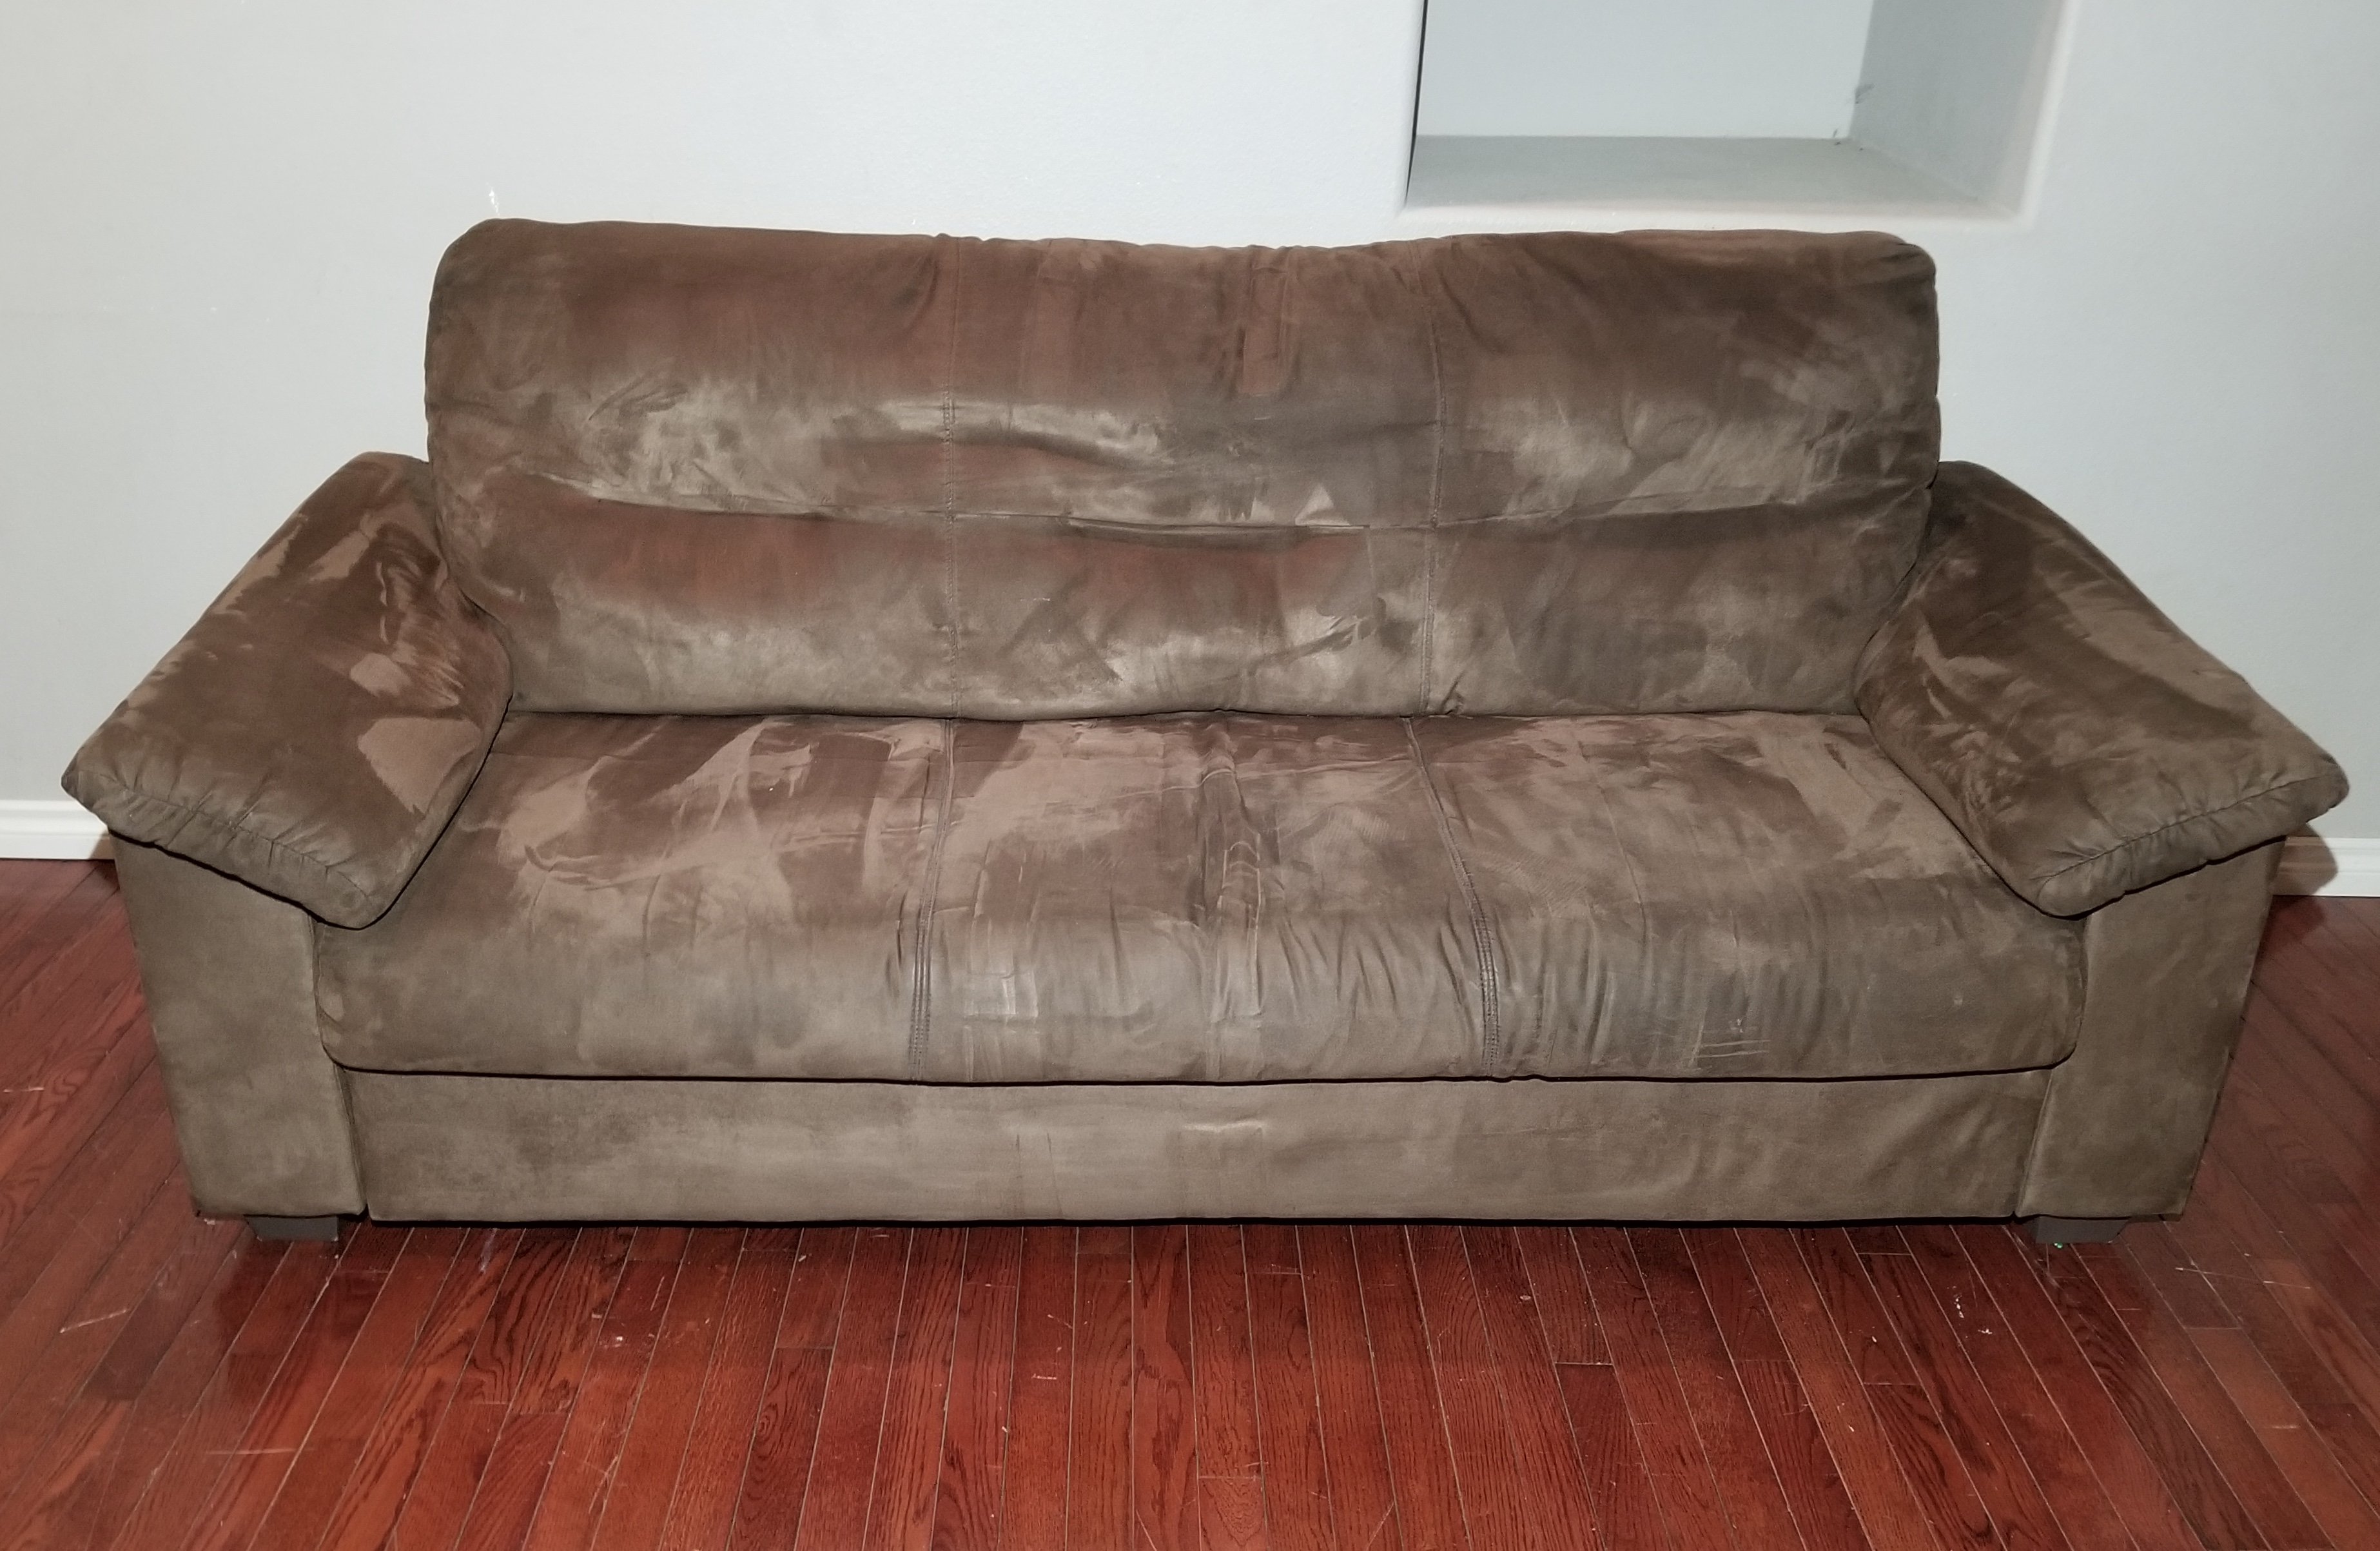 Broyhill Brown Corduroy Sofa Sof87 Ikea Knislinge Chocolate Brown Microfiber 3 Seat Couch